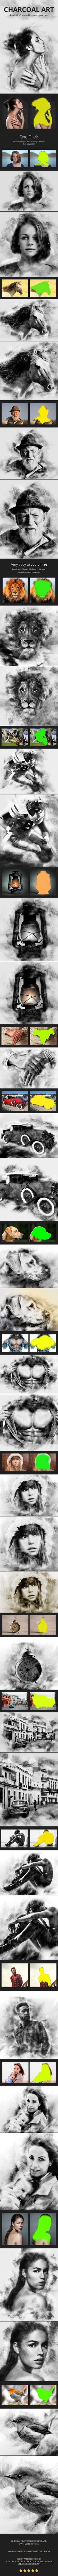 Charcoal Art  Realistic Charcoal Photoshop Action — Photoshop ABR #interior #canvas • Available here → https://graphicriver.net/item/charcoal-art-realistic-charcoal-photoshop-action/17808412?ref=pxcr